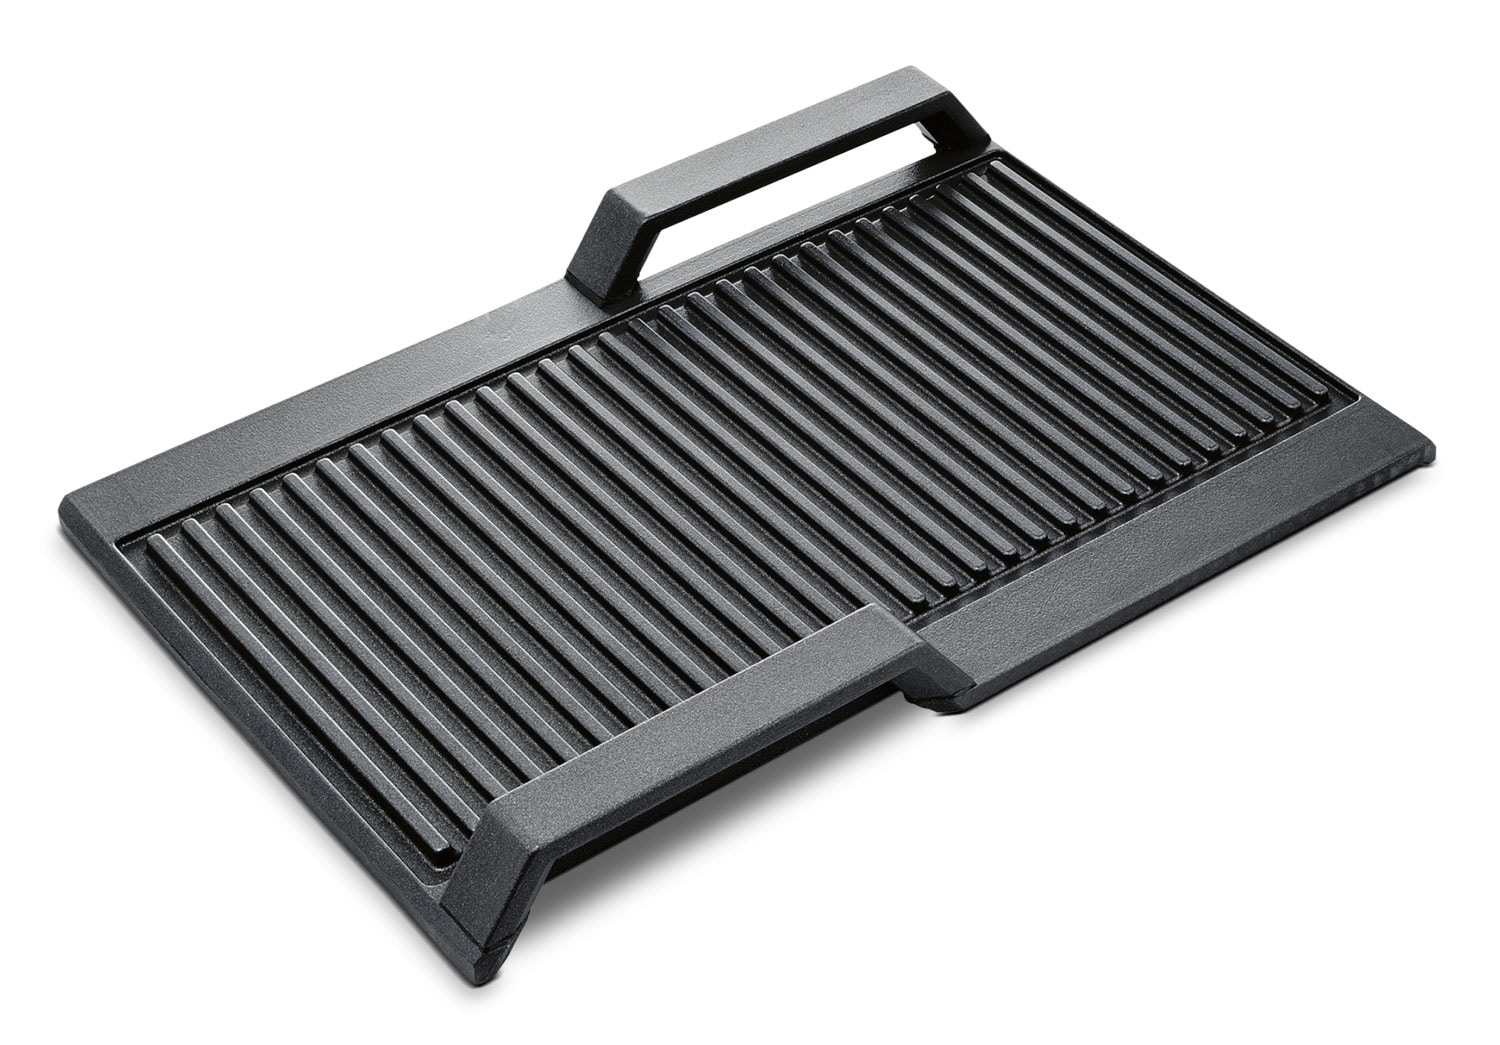 Appliance Accessories - Bosch Griddle Plate – HEZ390522